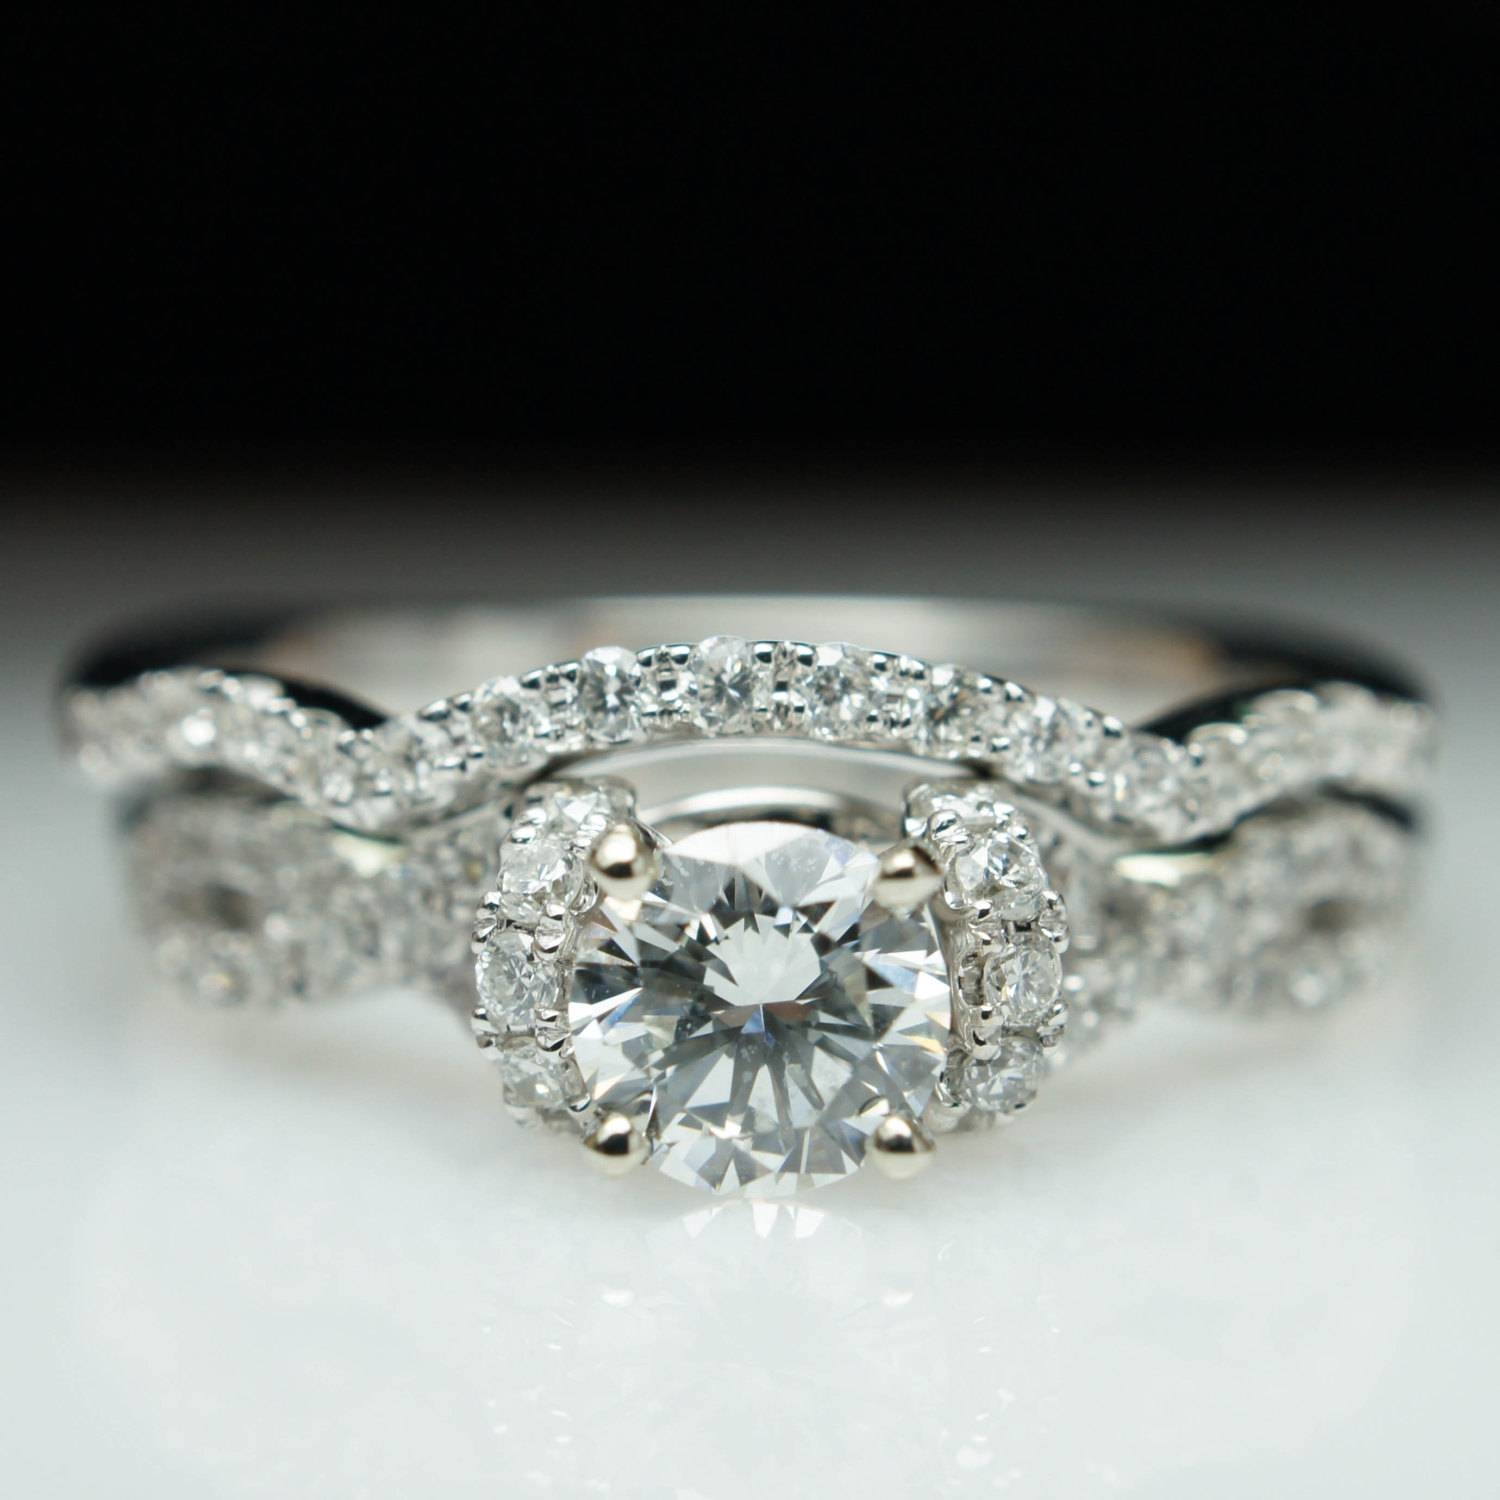 Diamond Half Halo Infinity Engagement Ring & Wedding Band With Regard To Infinity Engagement Rings And Wedding Bands (Gallery 14 of 15)